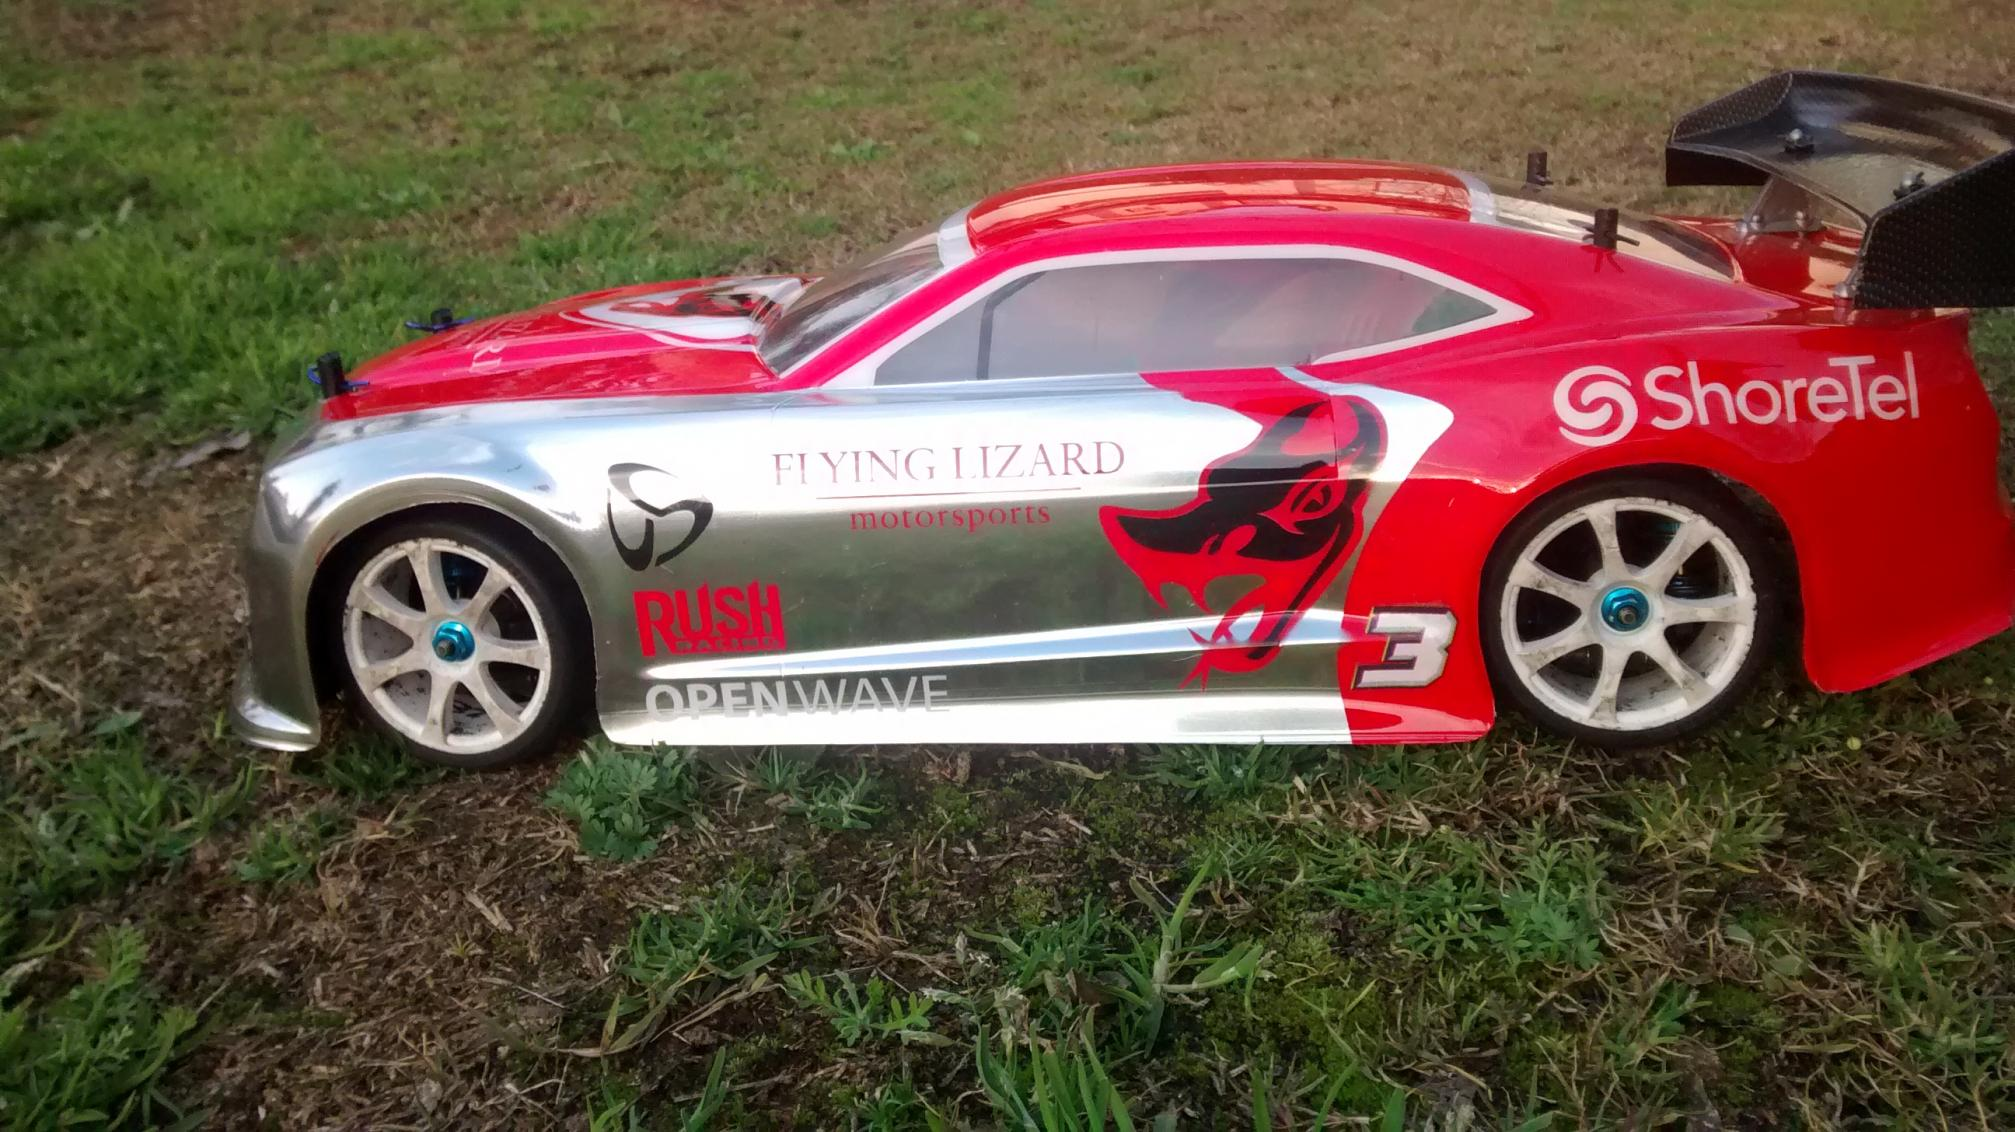 1267597d1422825518-usgt-body-pics-paint-discussion-img_20150130_162035382 Fascinating Hpi Racing 7038 Porsche 911 Gt1 Cars Trend